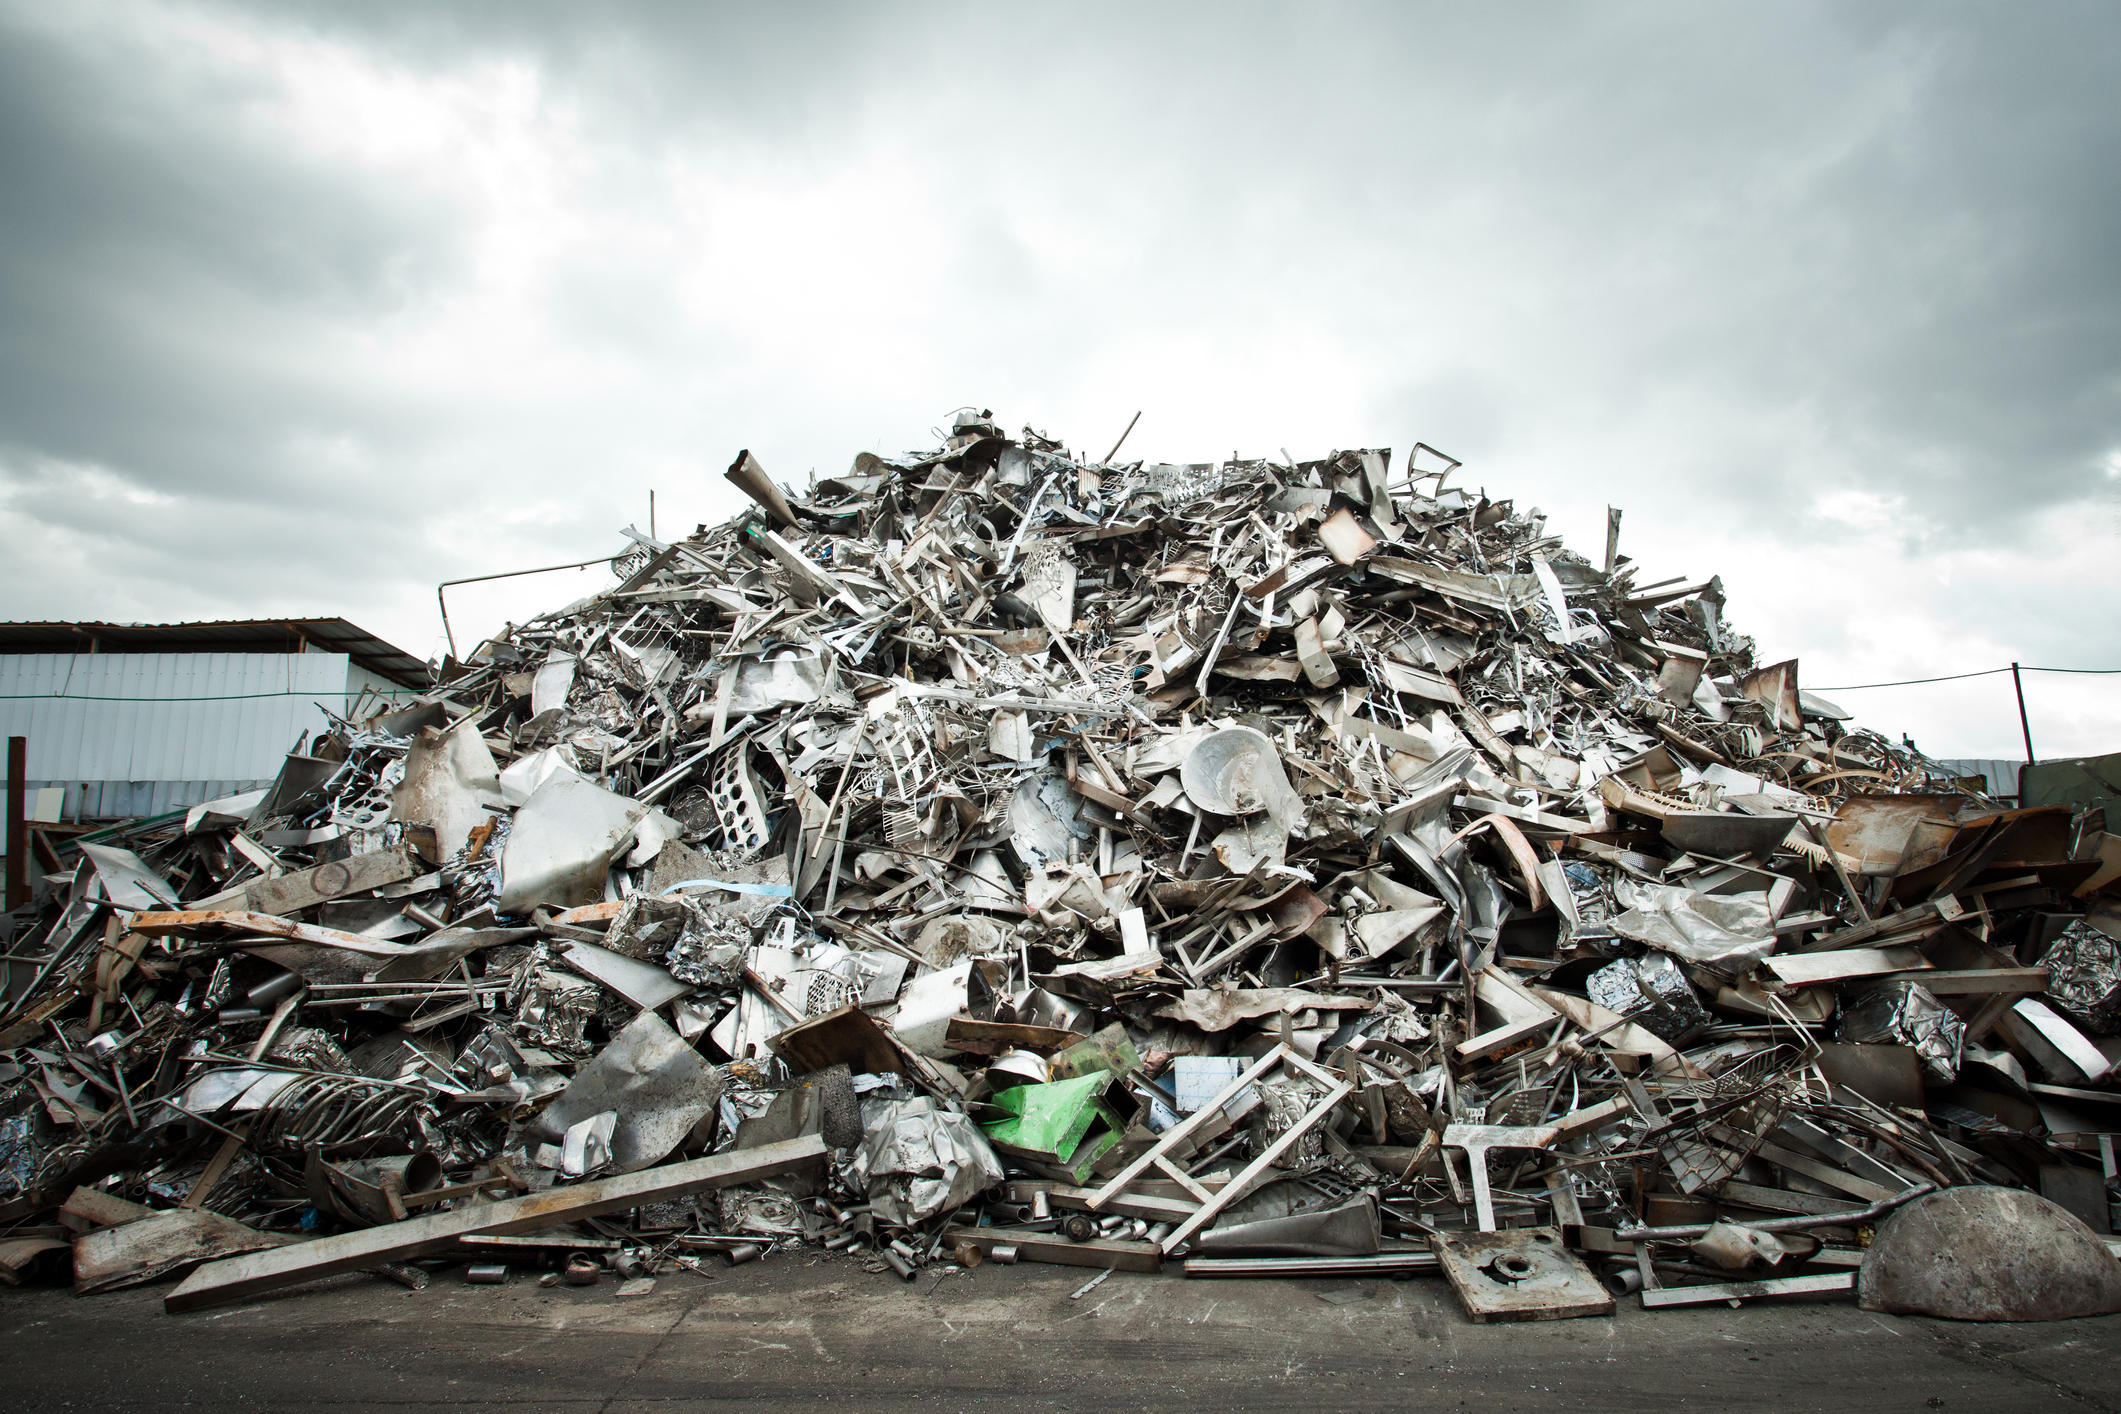 Contact us today at Gershow Recycling for a top dollar quote. 631-500-5369